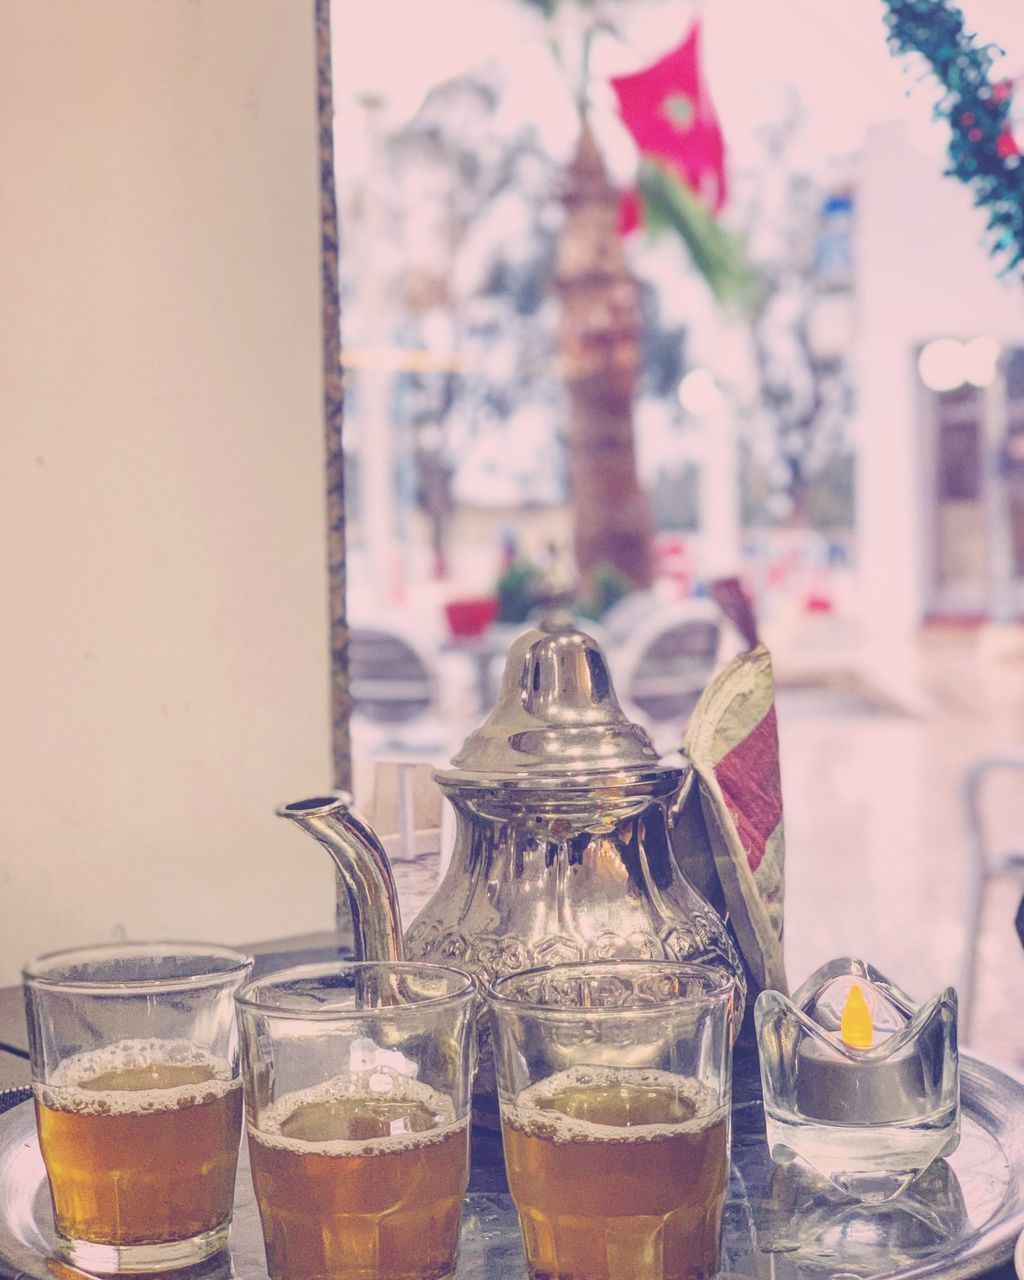 drink, food and drink, refreshment, table, household equipment, focus on foreground, glass - material, glass, freshness, still life, transparent, drinking glass, close-up, indoors, container, no people, food, jar, business, restaurant, teapot